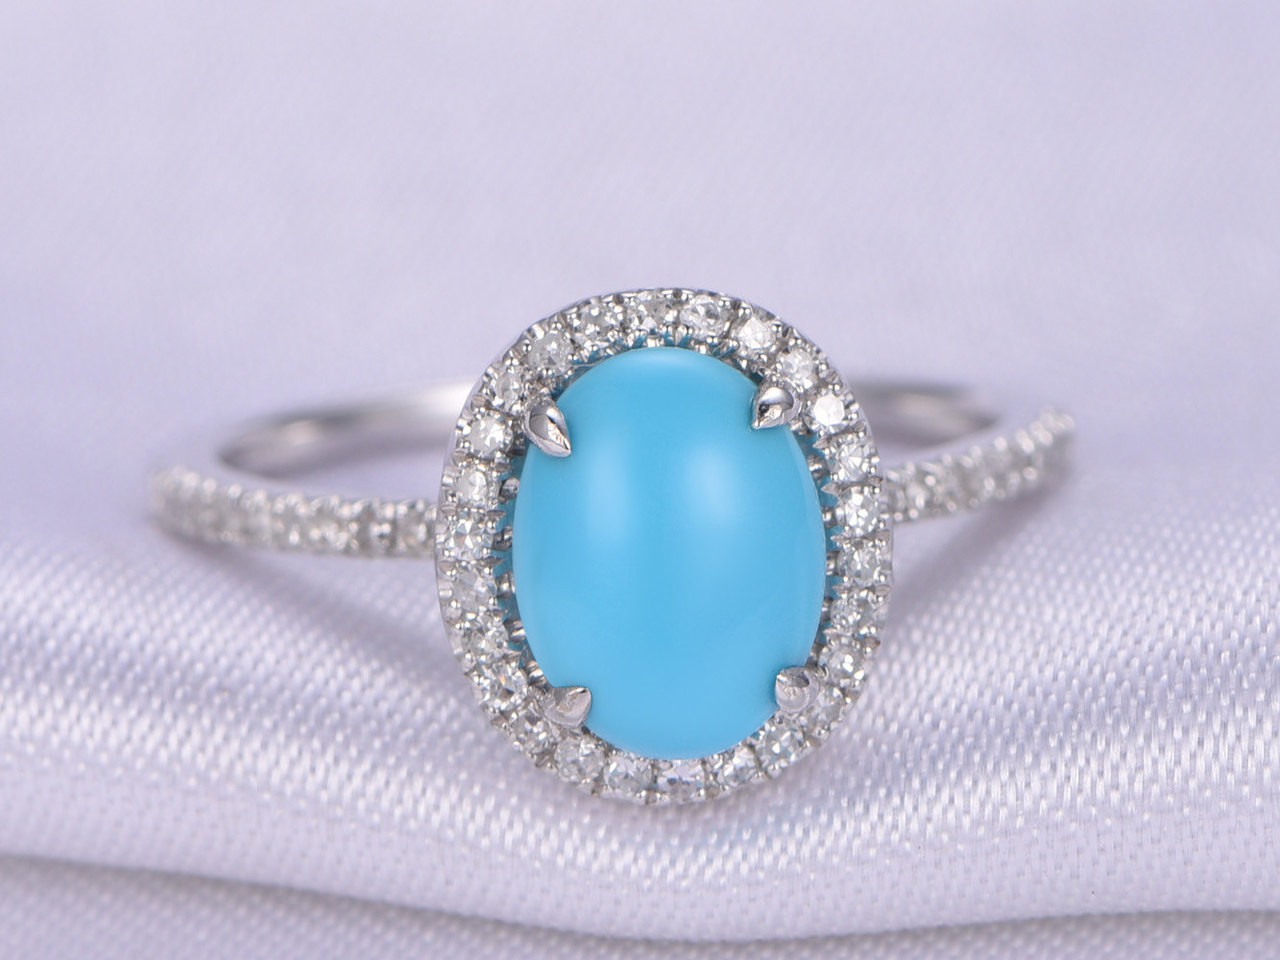 Sleeping Beauty Turquoise Ring,7x9mm Oval Cut Turquoise Engagement ...